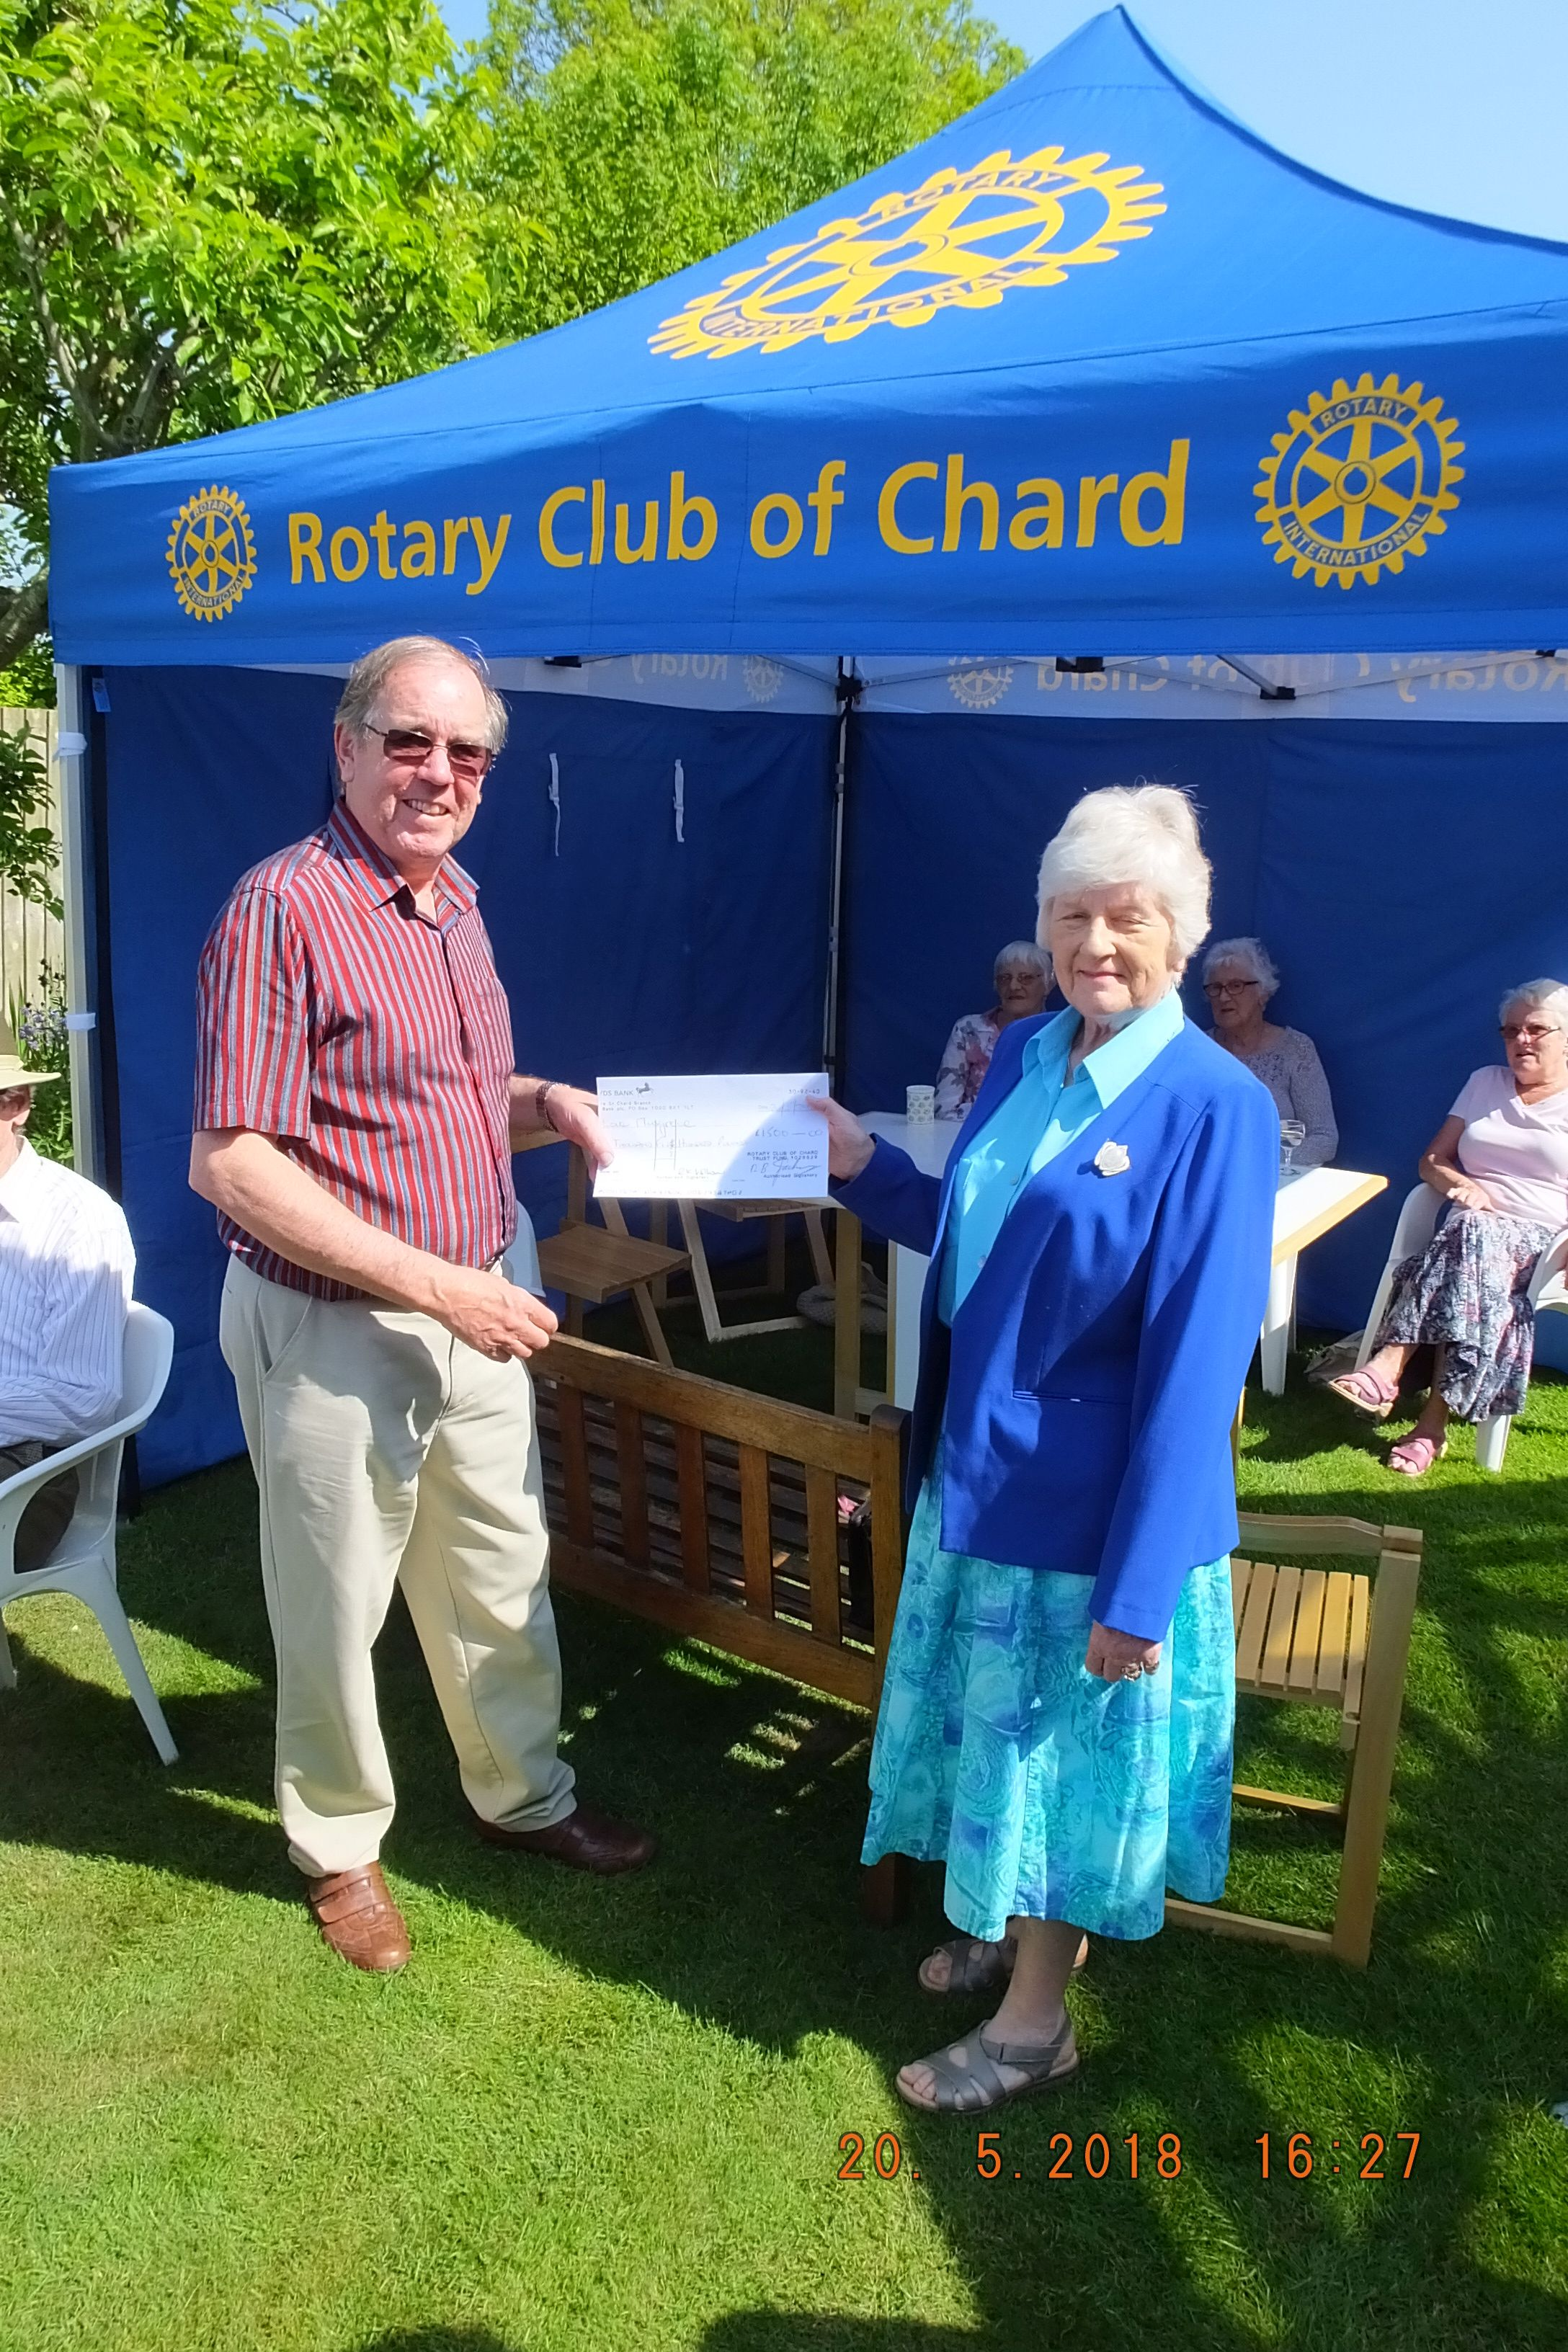 £1,500 boost for Musgrove MRI Appeal thanks to Chard Rotary fundraising